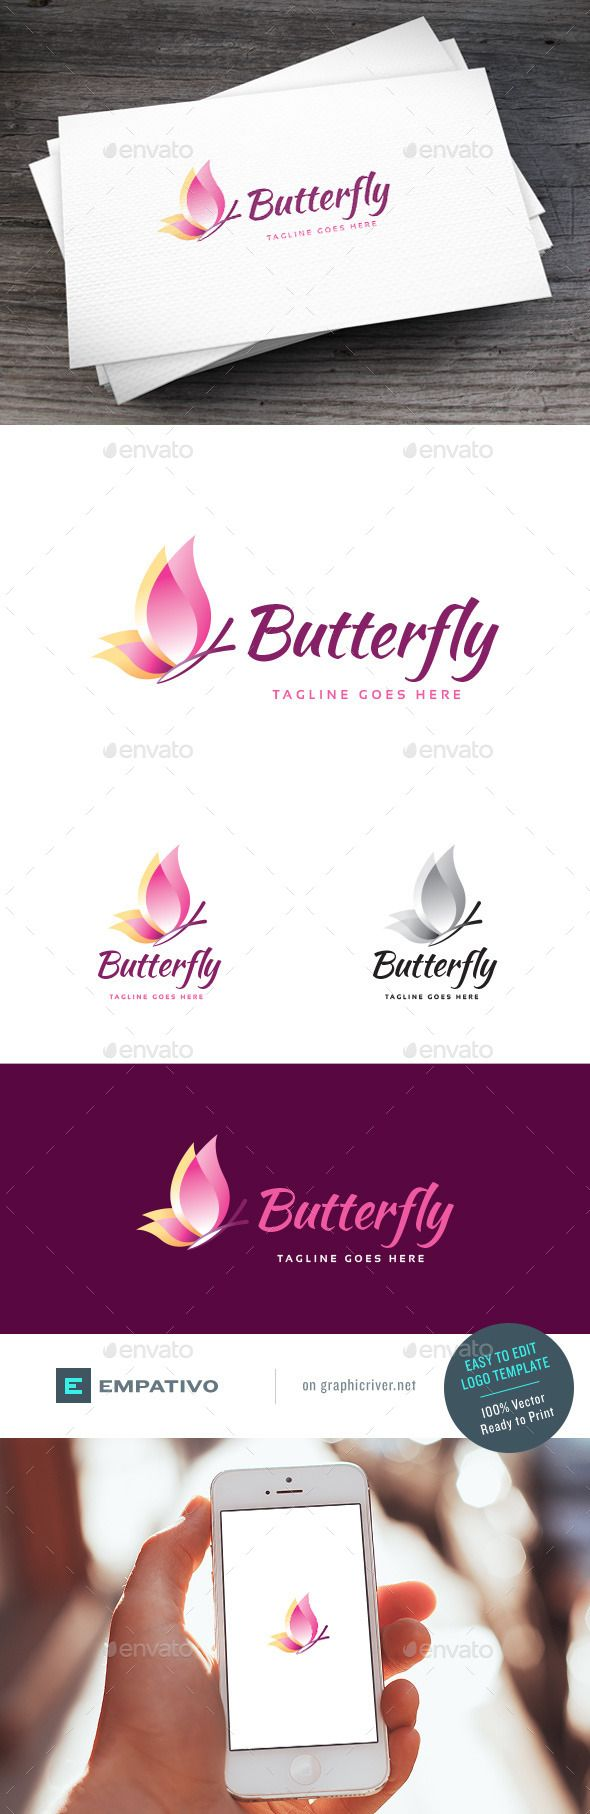 Butterfly Logo Template — Vector EPS #monarch #natural cosmetics • Available here → https://graphicriver.net/item/butterfly-logo-template/11204463?ref=pxcr